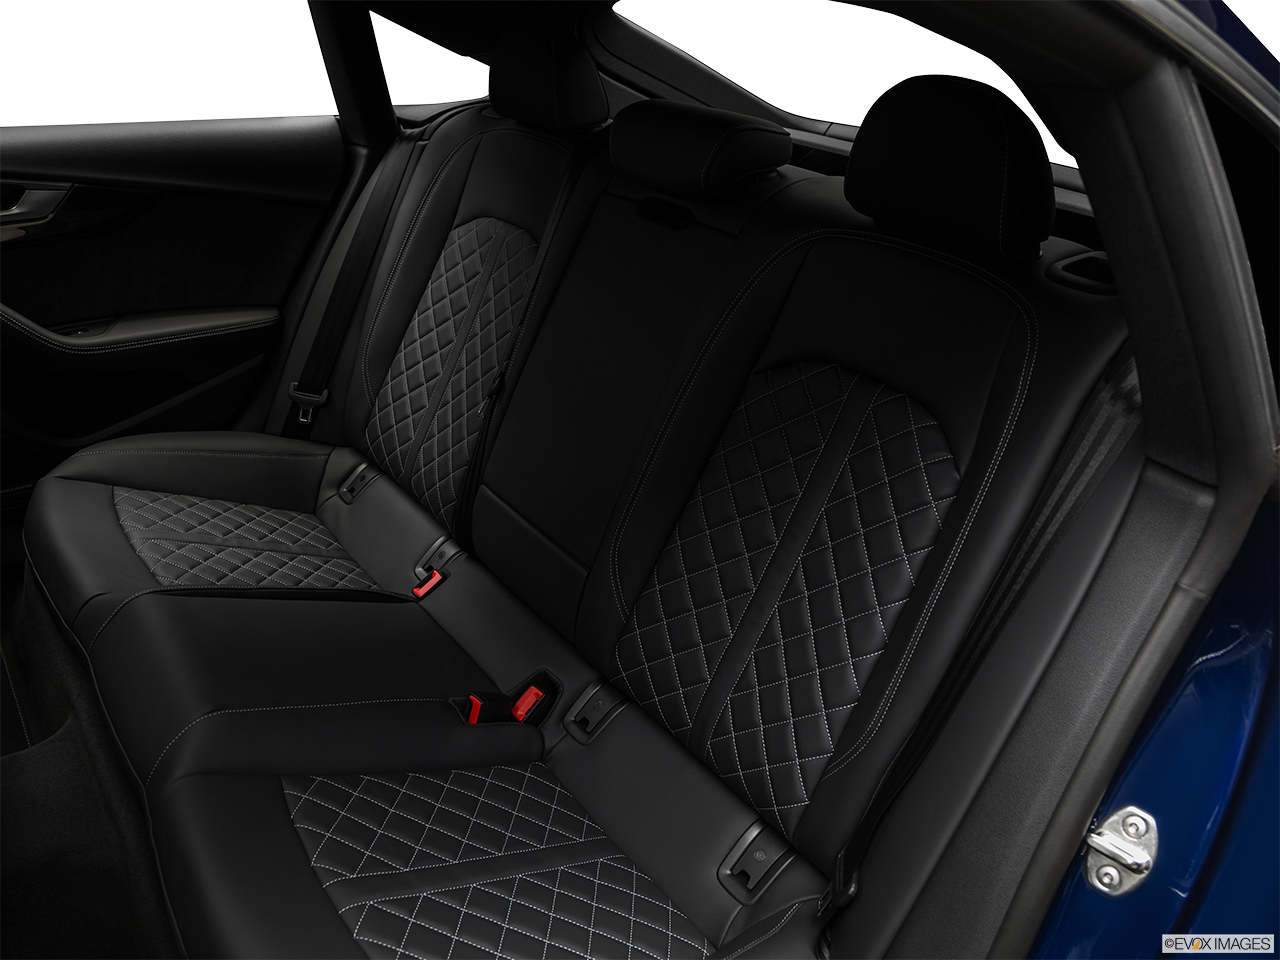 2019 Audi S5 Sportback Premium Plus 3.0 TFSI Rear seats from Drivers Side.